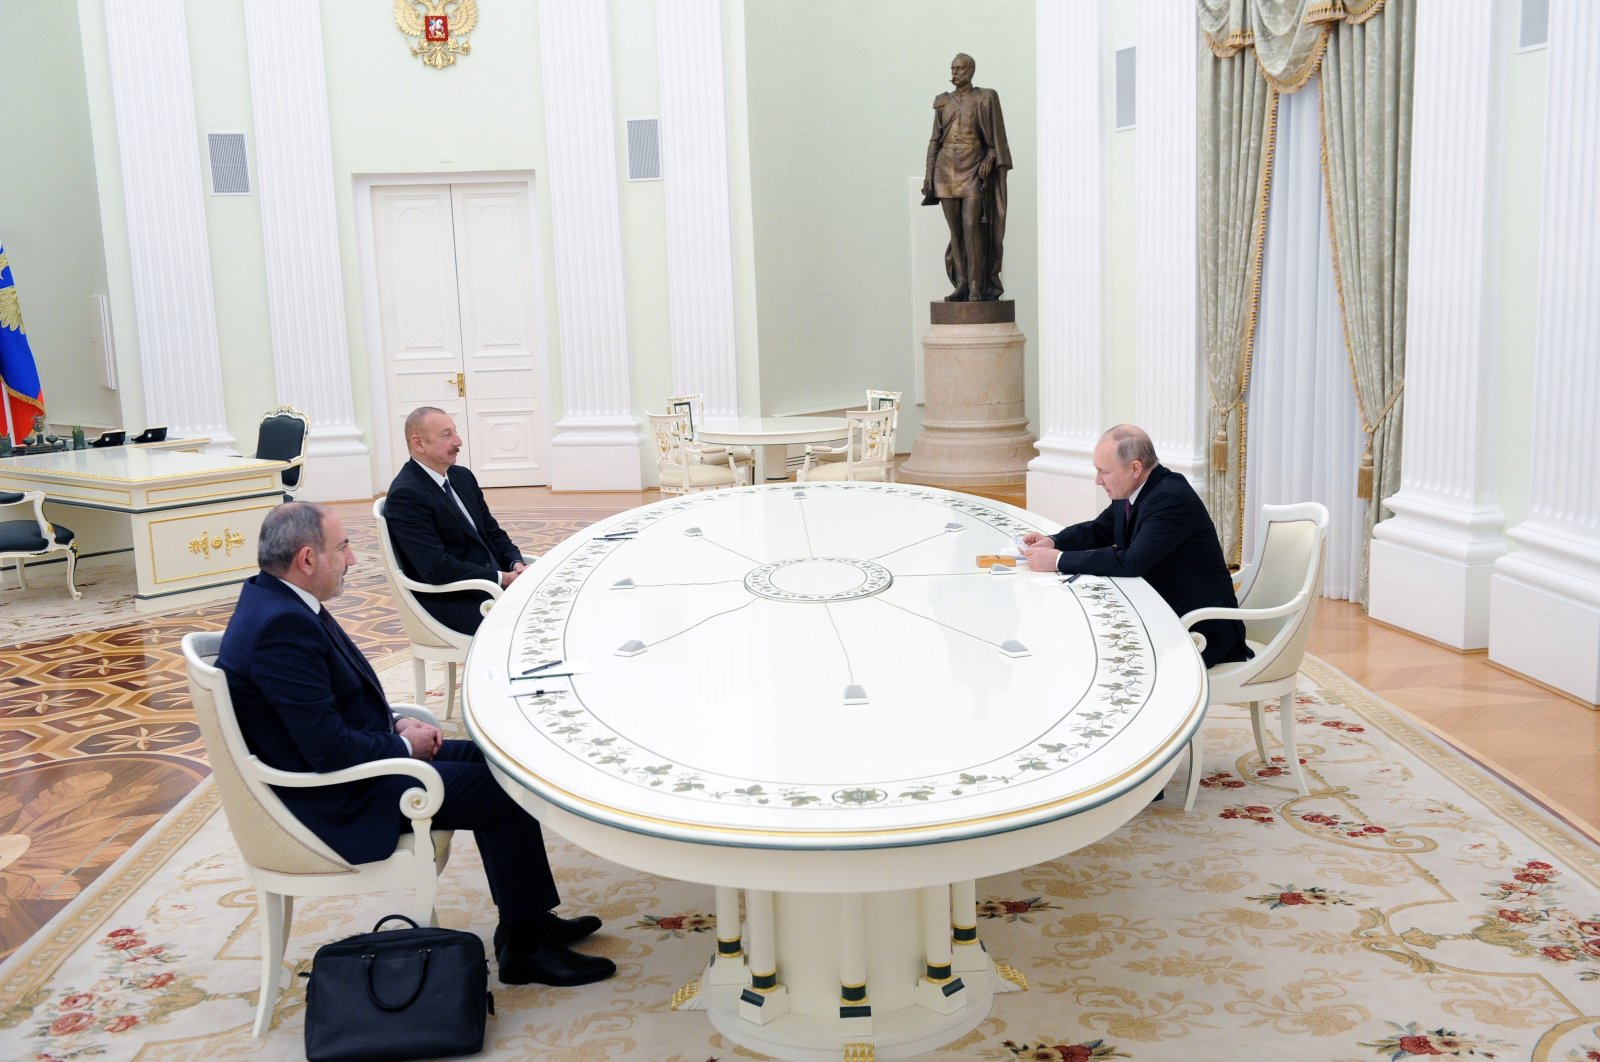 Russia's President Vladimir Putin meets with Azerbaijan's President Ilham Aliyev and Armenia's Prime Minister Nikol Pashinian to discuss the implementation of the cease-fire over Nagorno-Karabakh reached on Nov. 9 and measures to solve problems in the region, in Moscow, Russia, Jan. 11, 2021. (Reuters Photo)